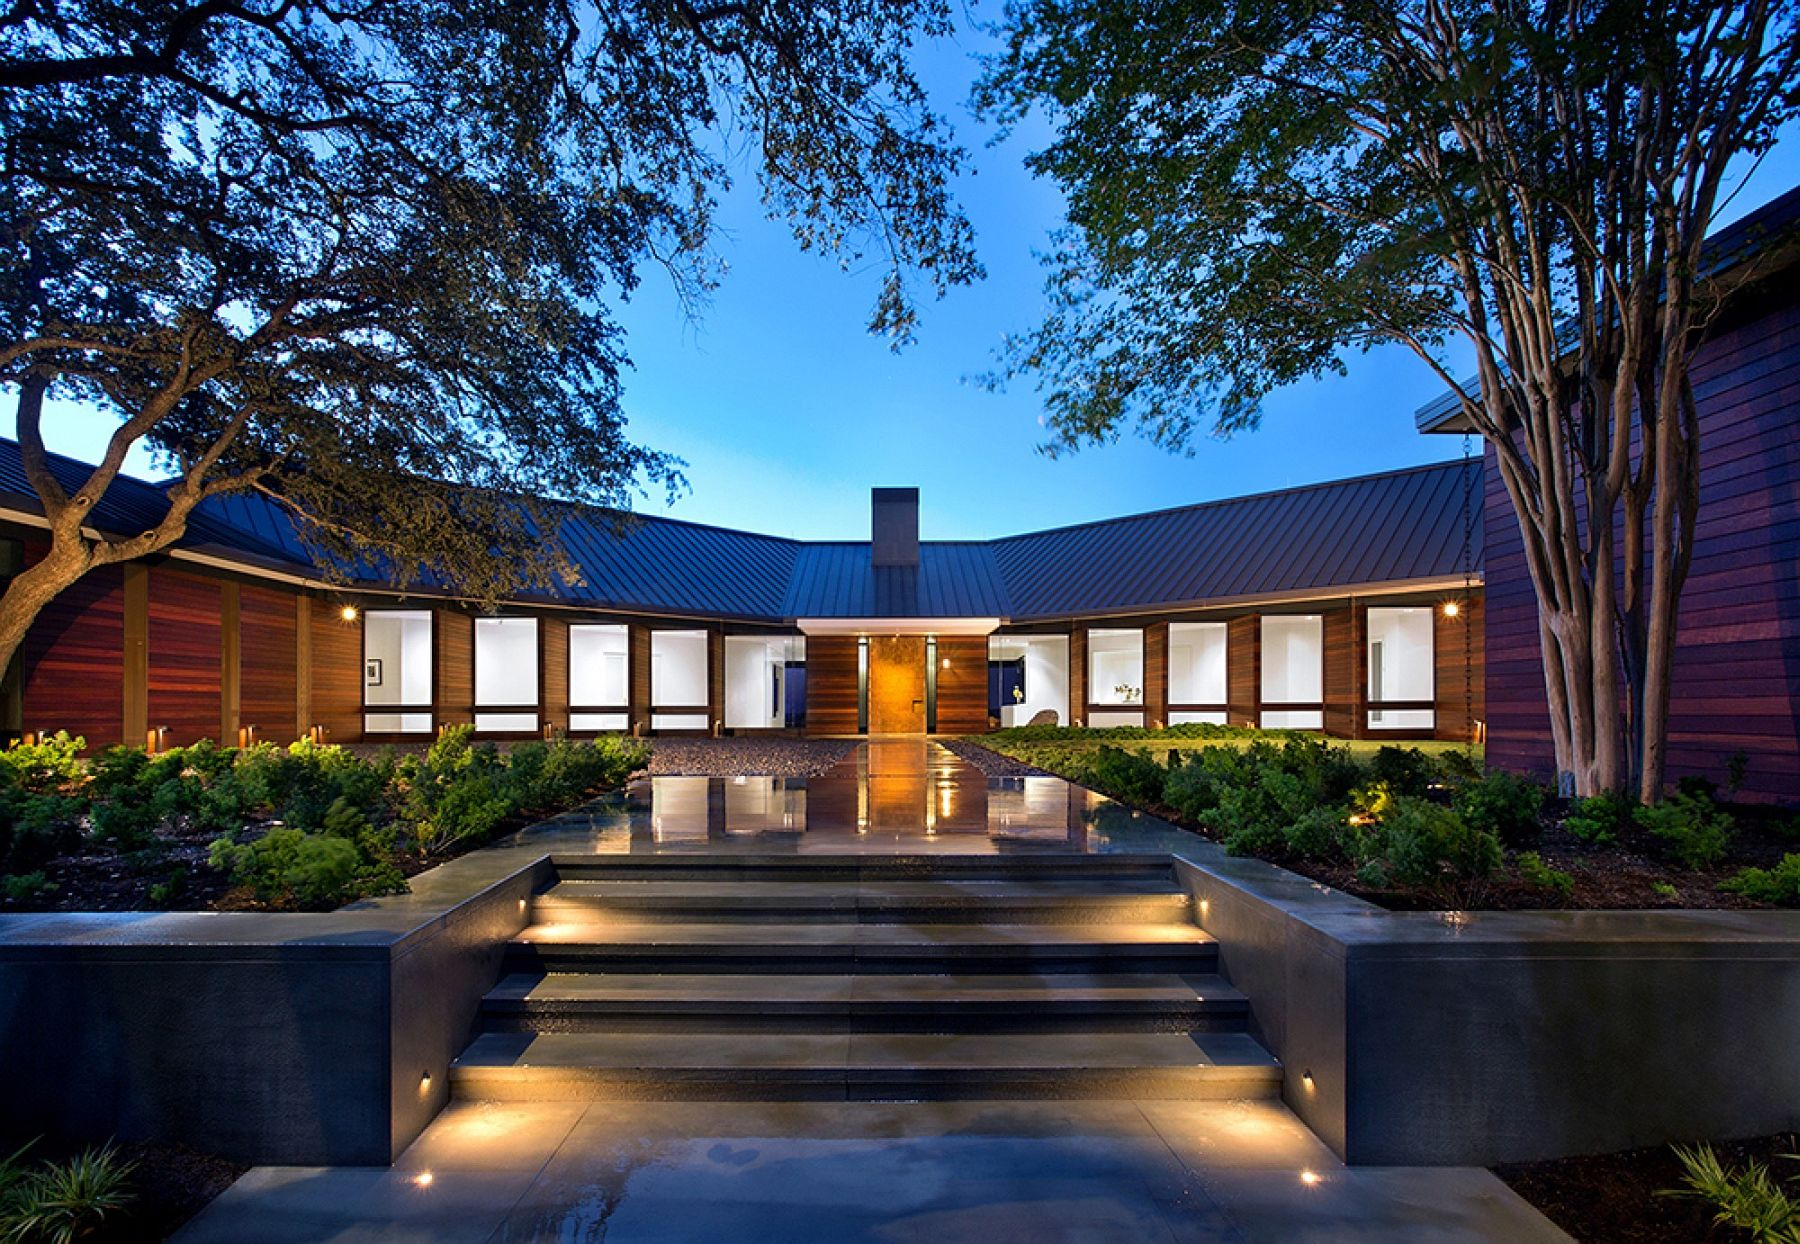 Hilltop Residence Miró by Rivera Architects in Austin, Texas